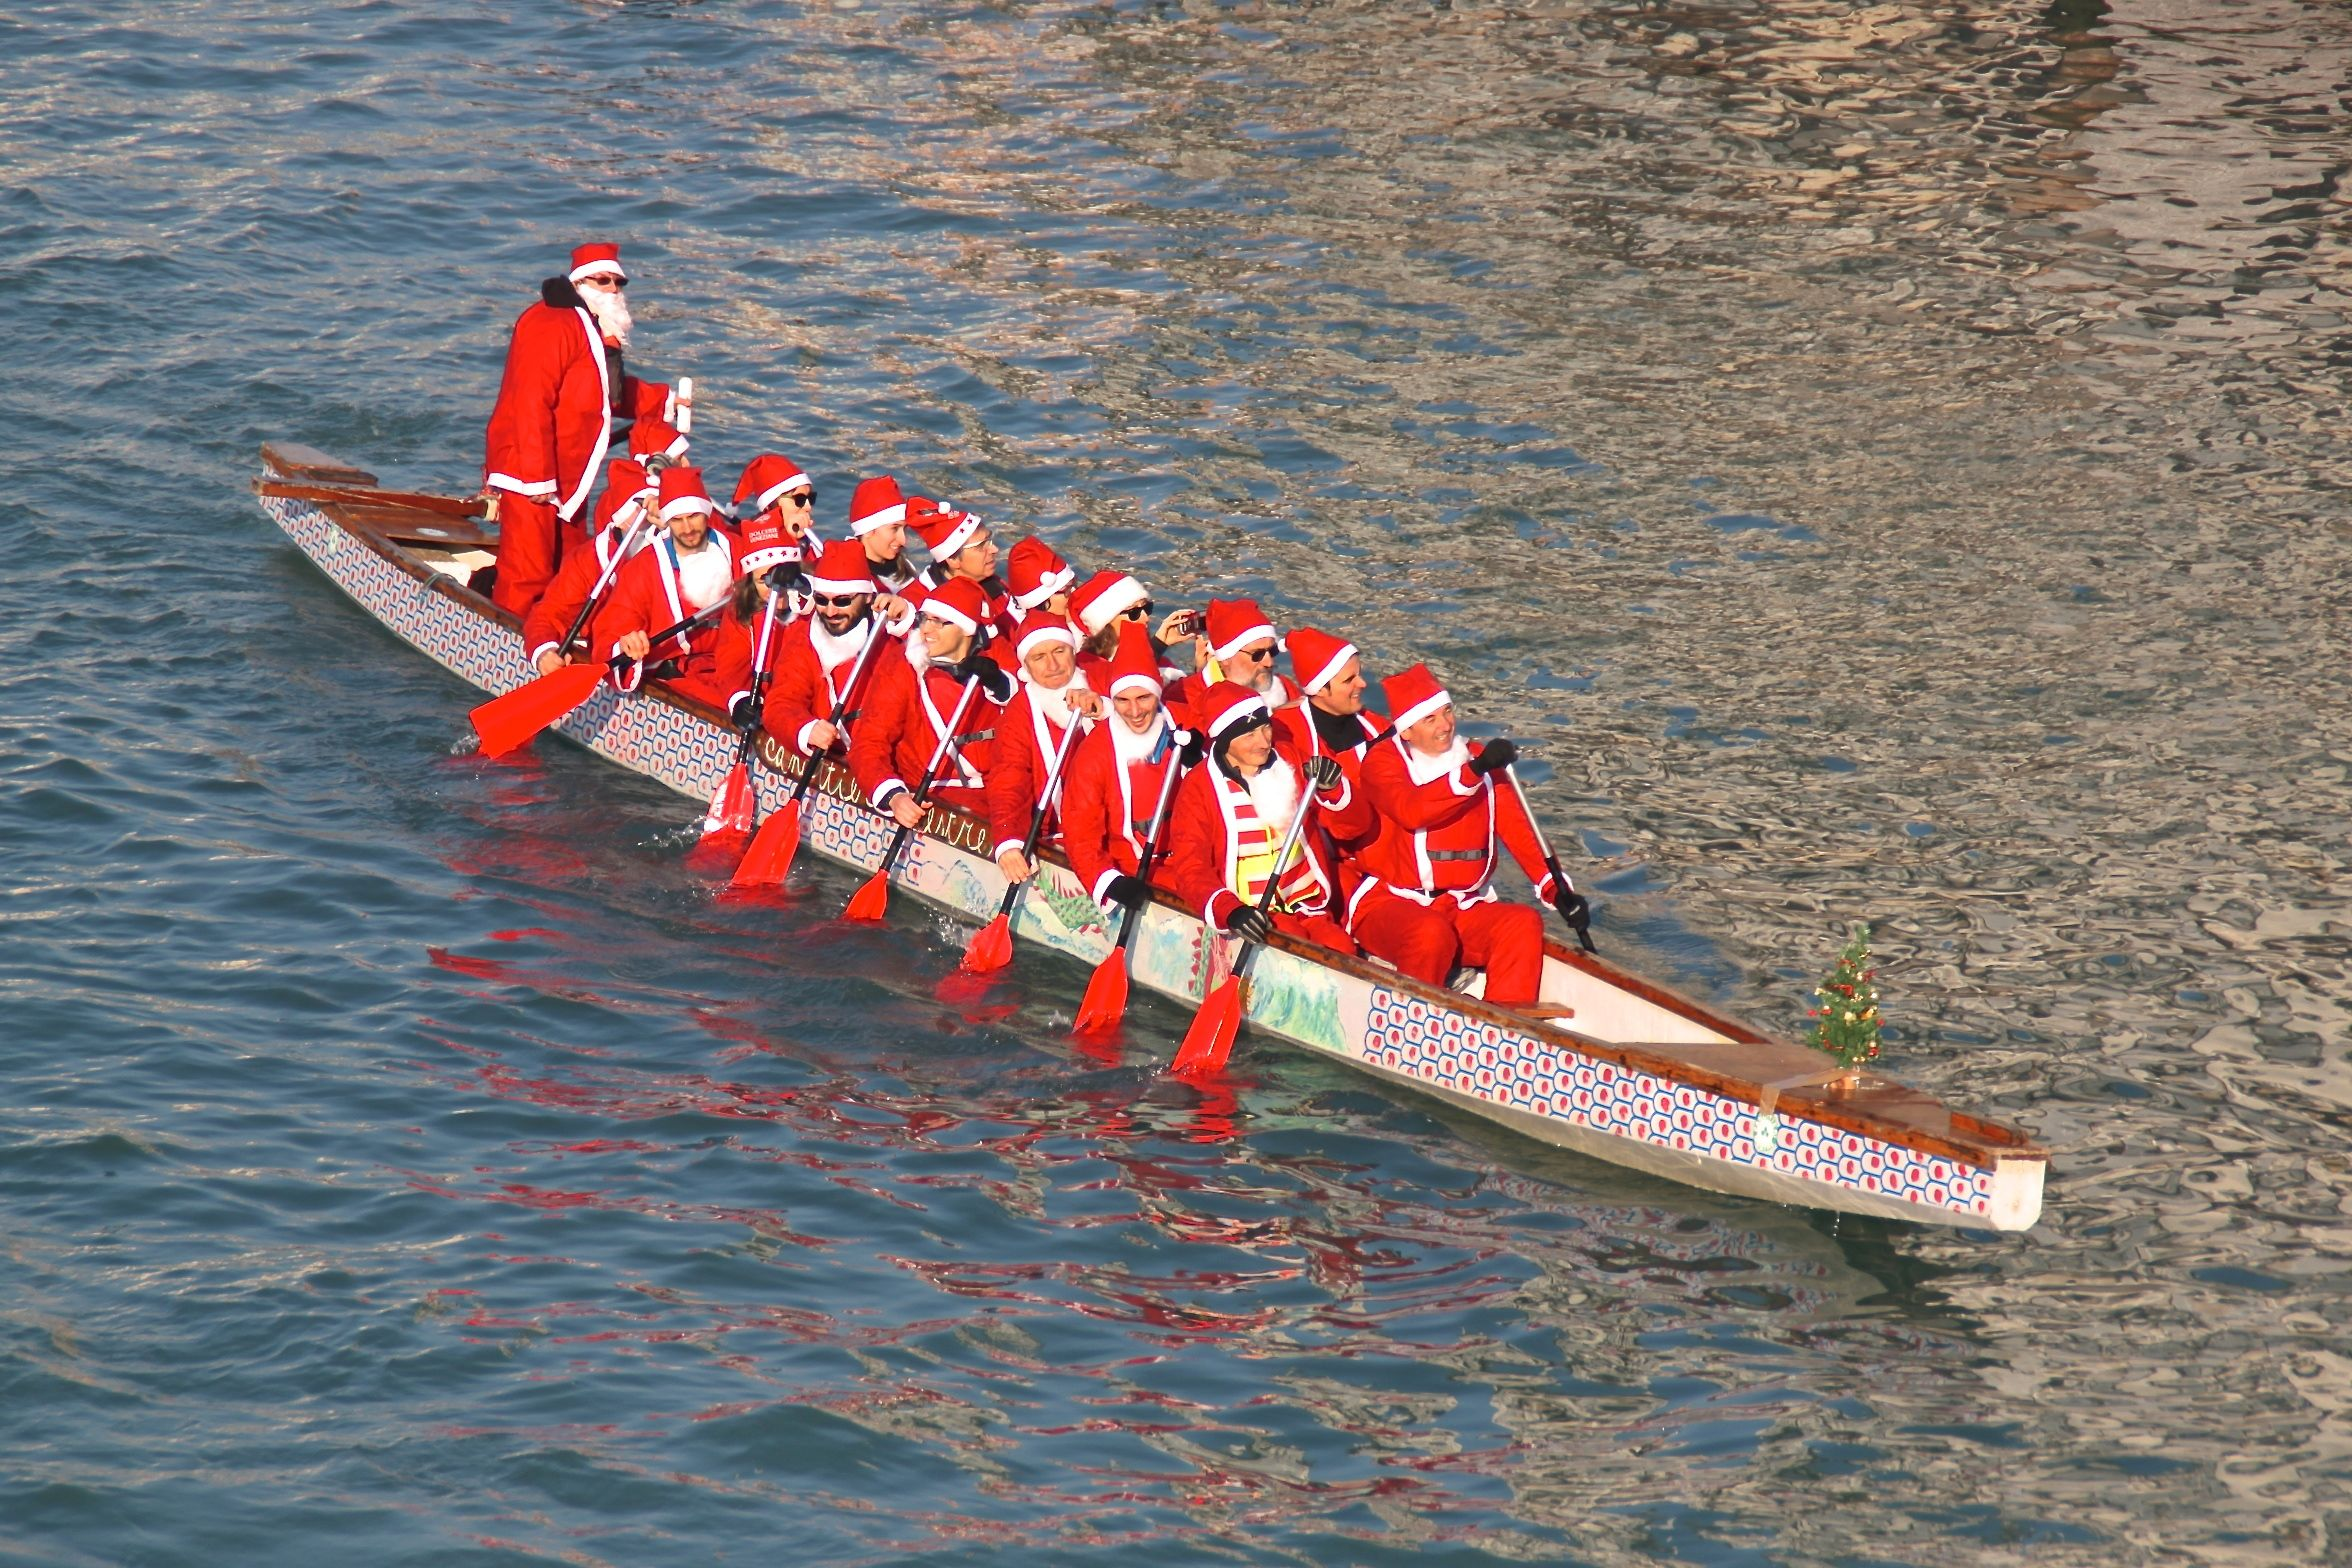 A dragon boat-load of babbo natale rowers on Venice's Grand Canal